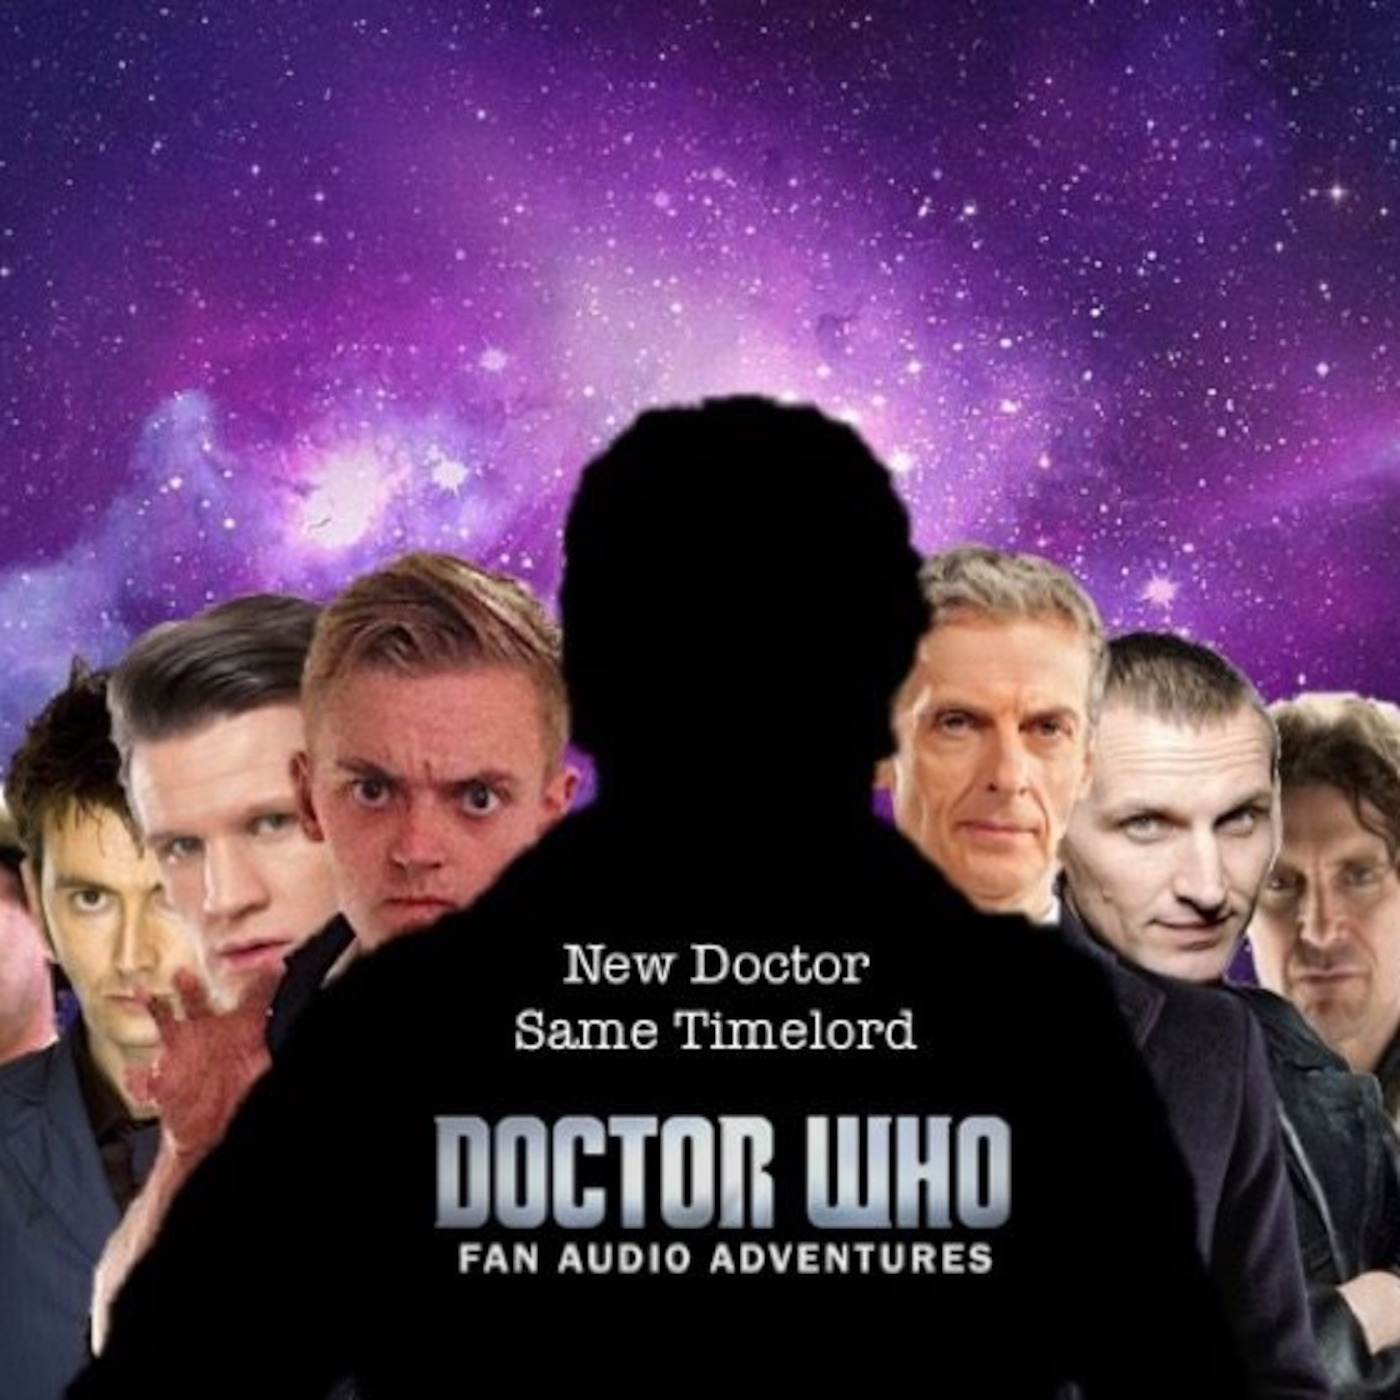 Doctor Who Fan Audio Adventures